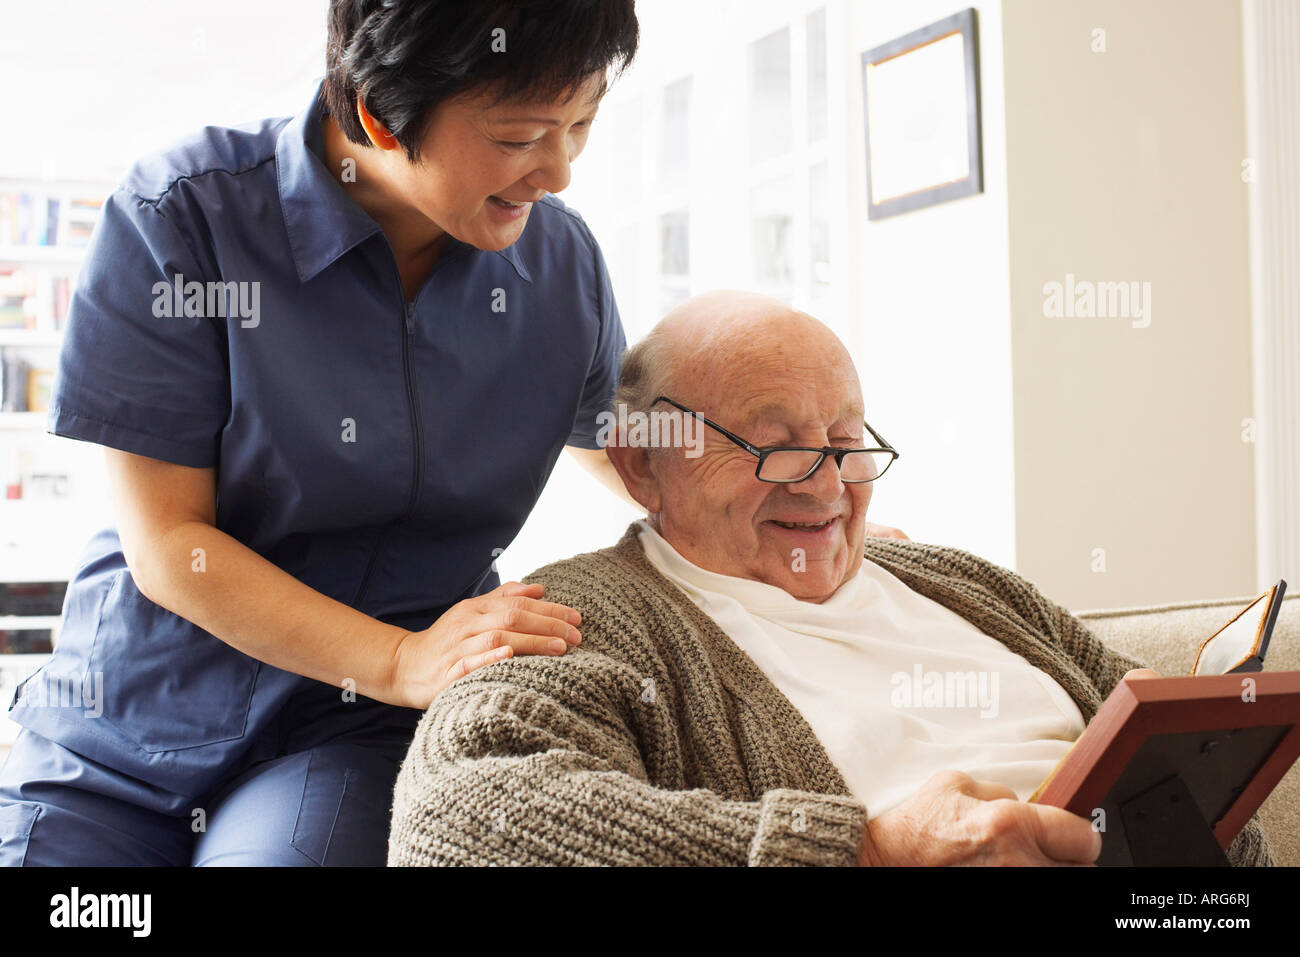 Senior Man Looking at Pictures with Woman Looking over his Shoulder Stock Photo